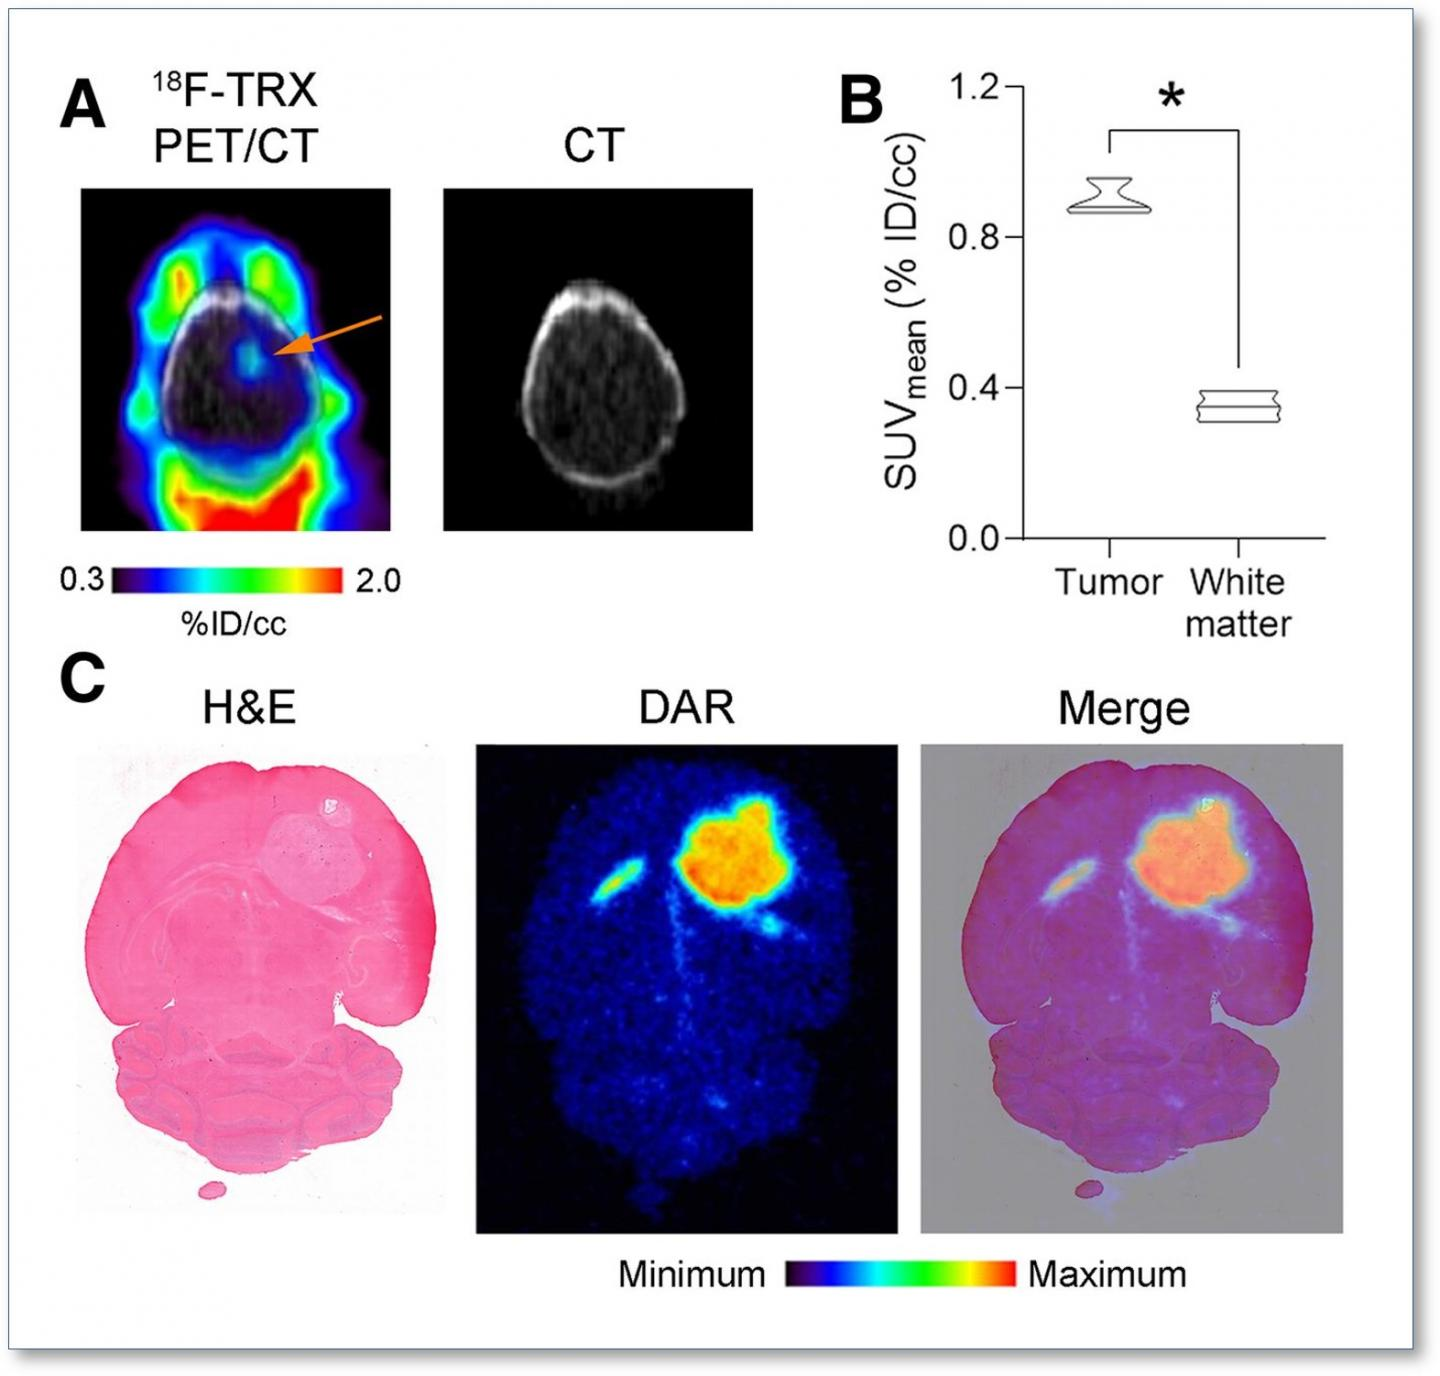 LIP expansion is detectable in an orthotopic glioma model with F-18 TRX.